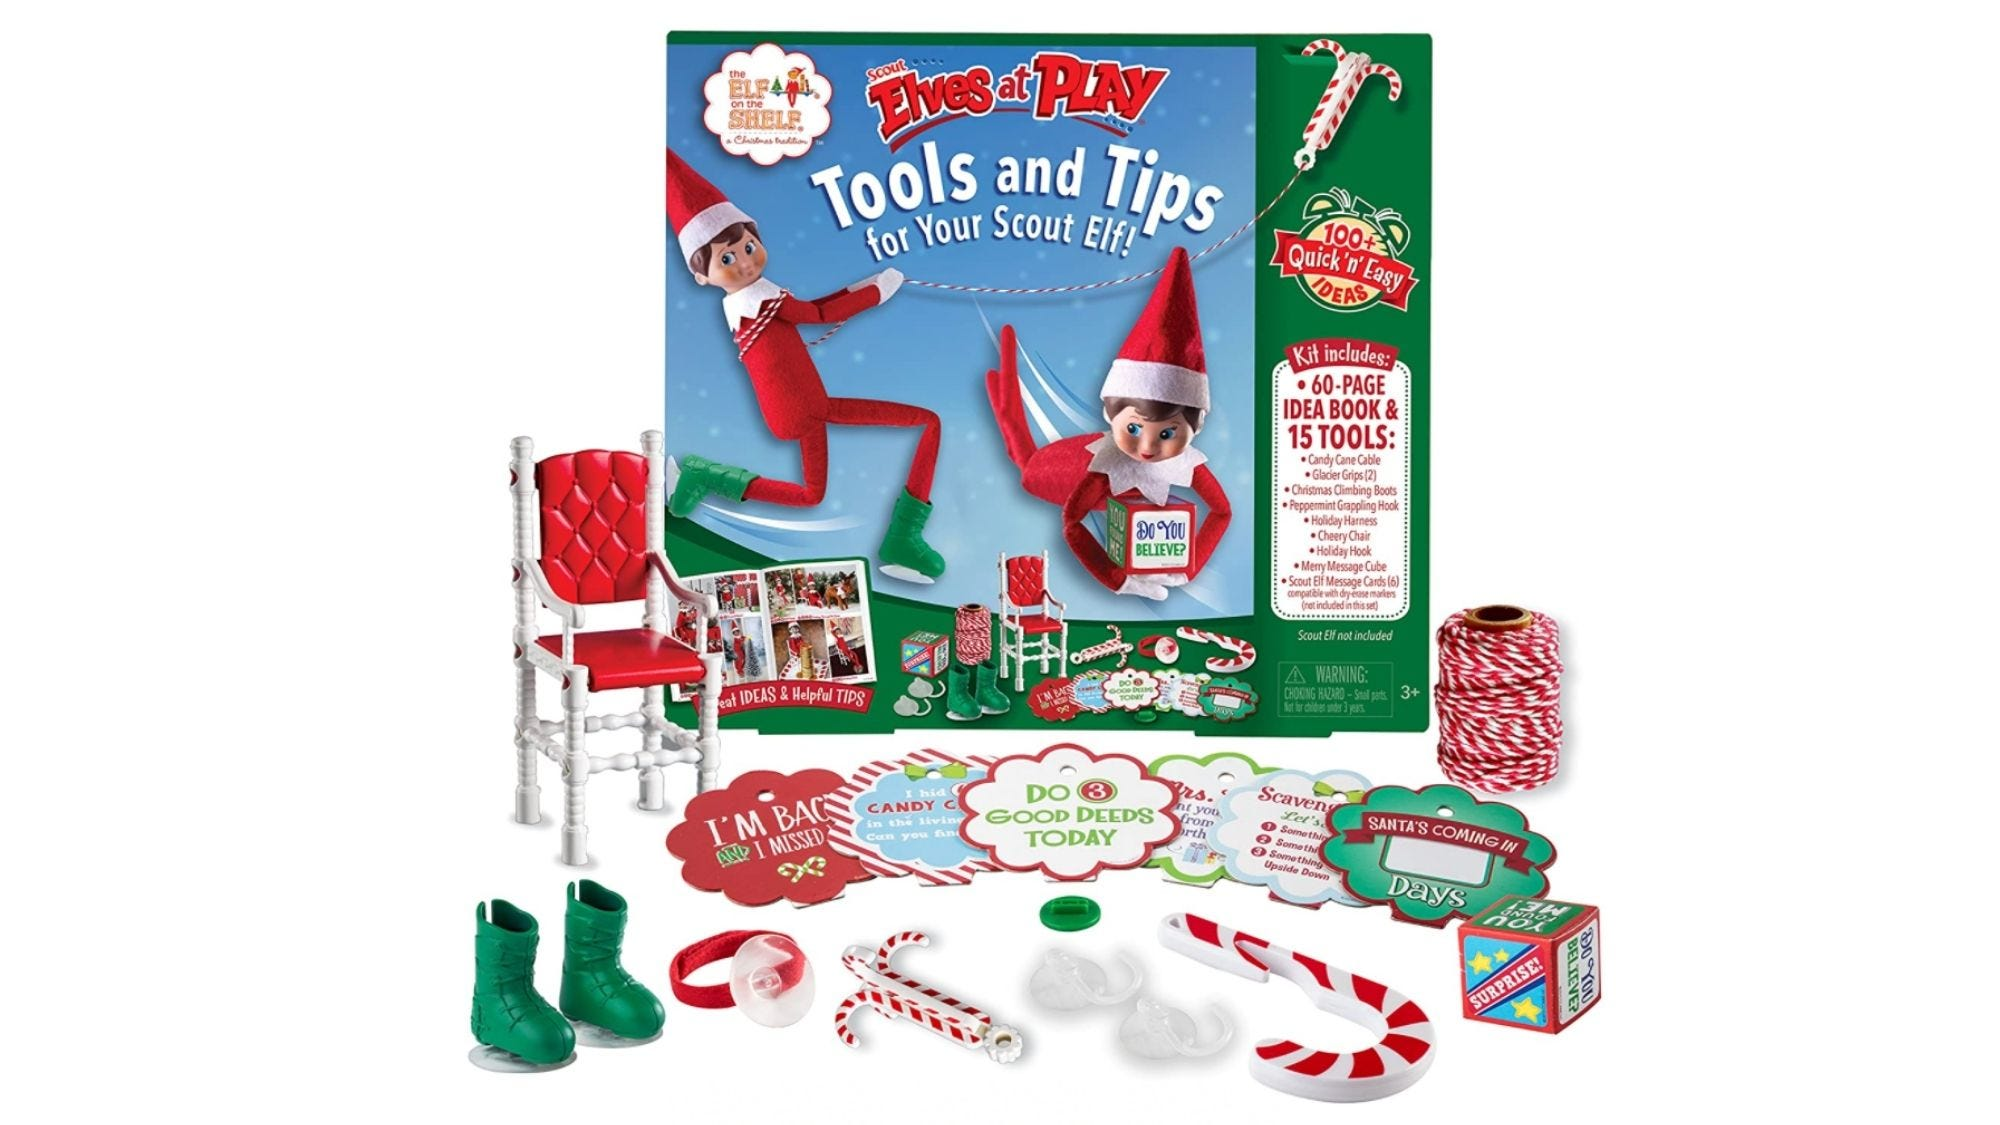 This book is brimming with ideas for making the most of your Elf on the Shelf.